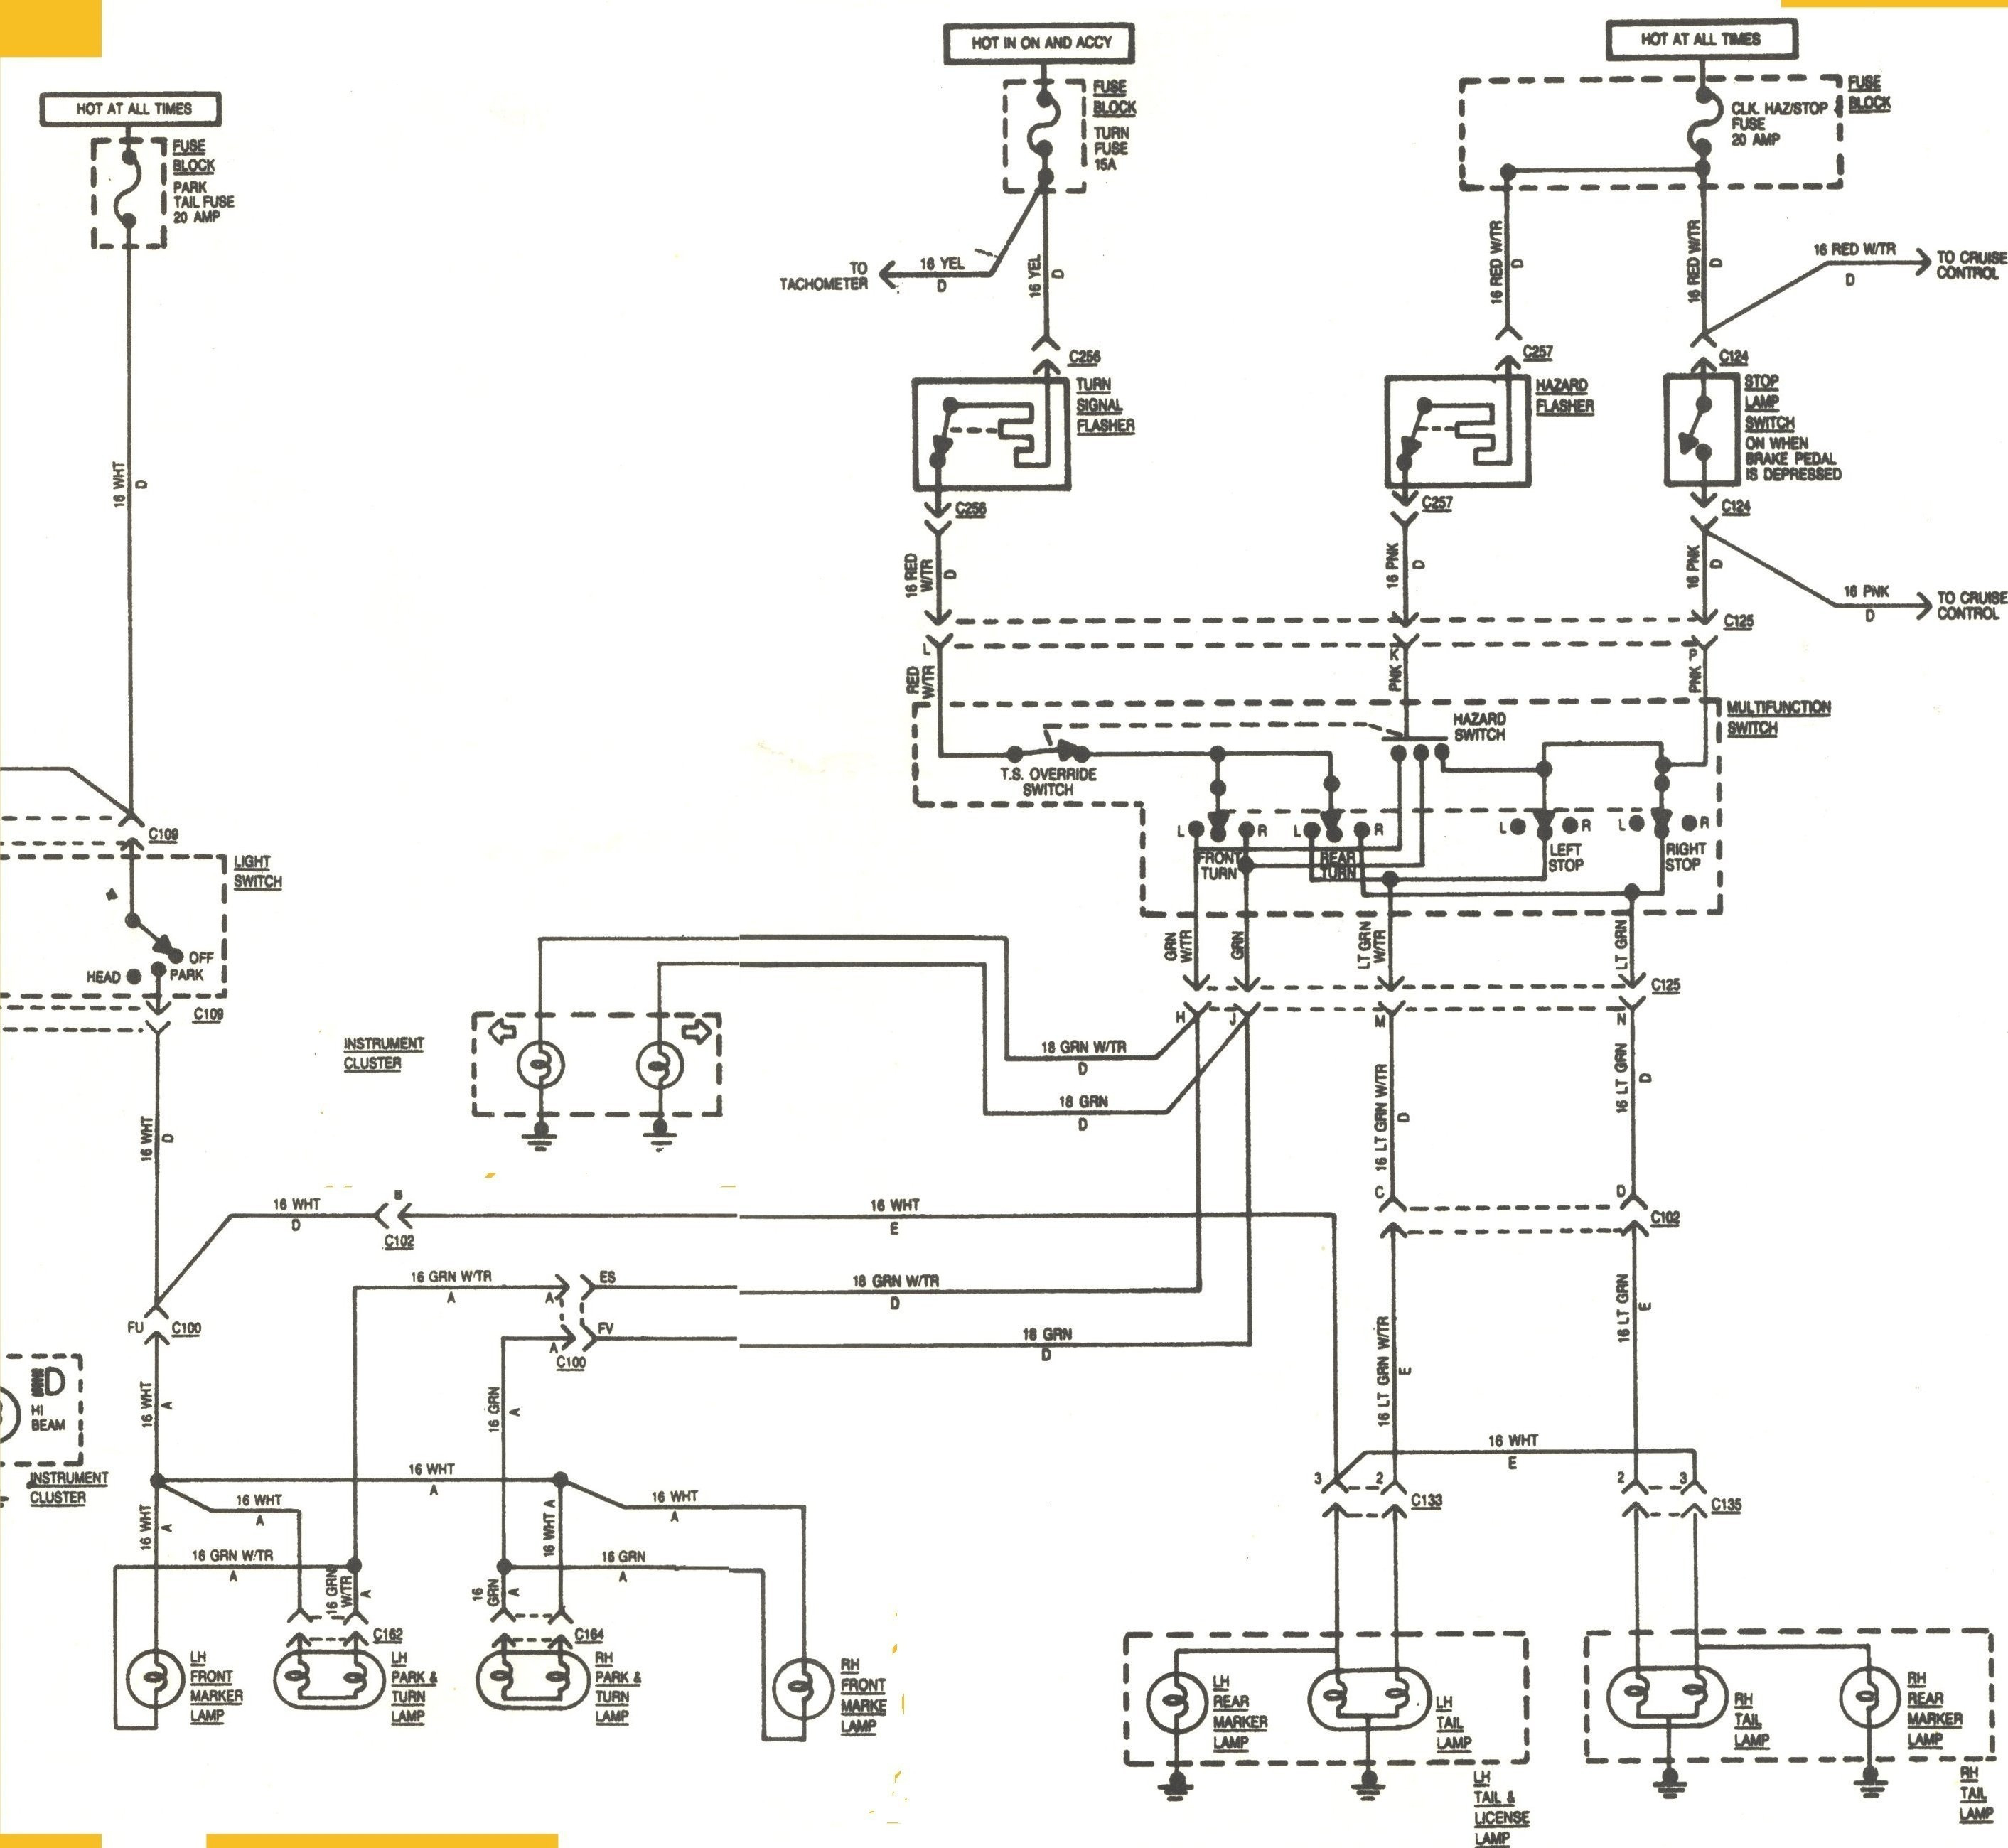 turn signal switch wiring diagram Collection-Wiring Diagrams For Turn Signal New Turn Signal Flasher Diagram Turn Signal Wiring Diagram Turn Signal 11-l